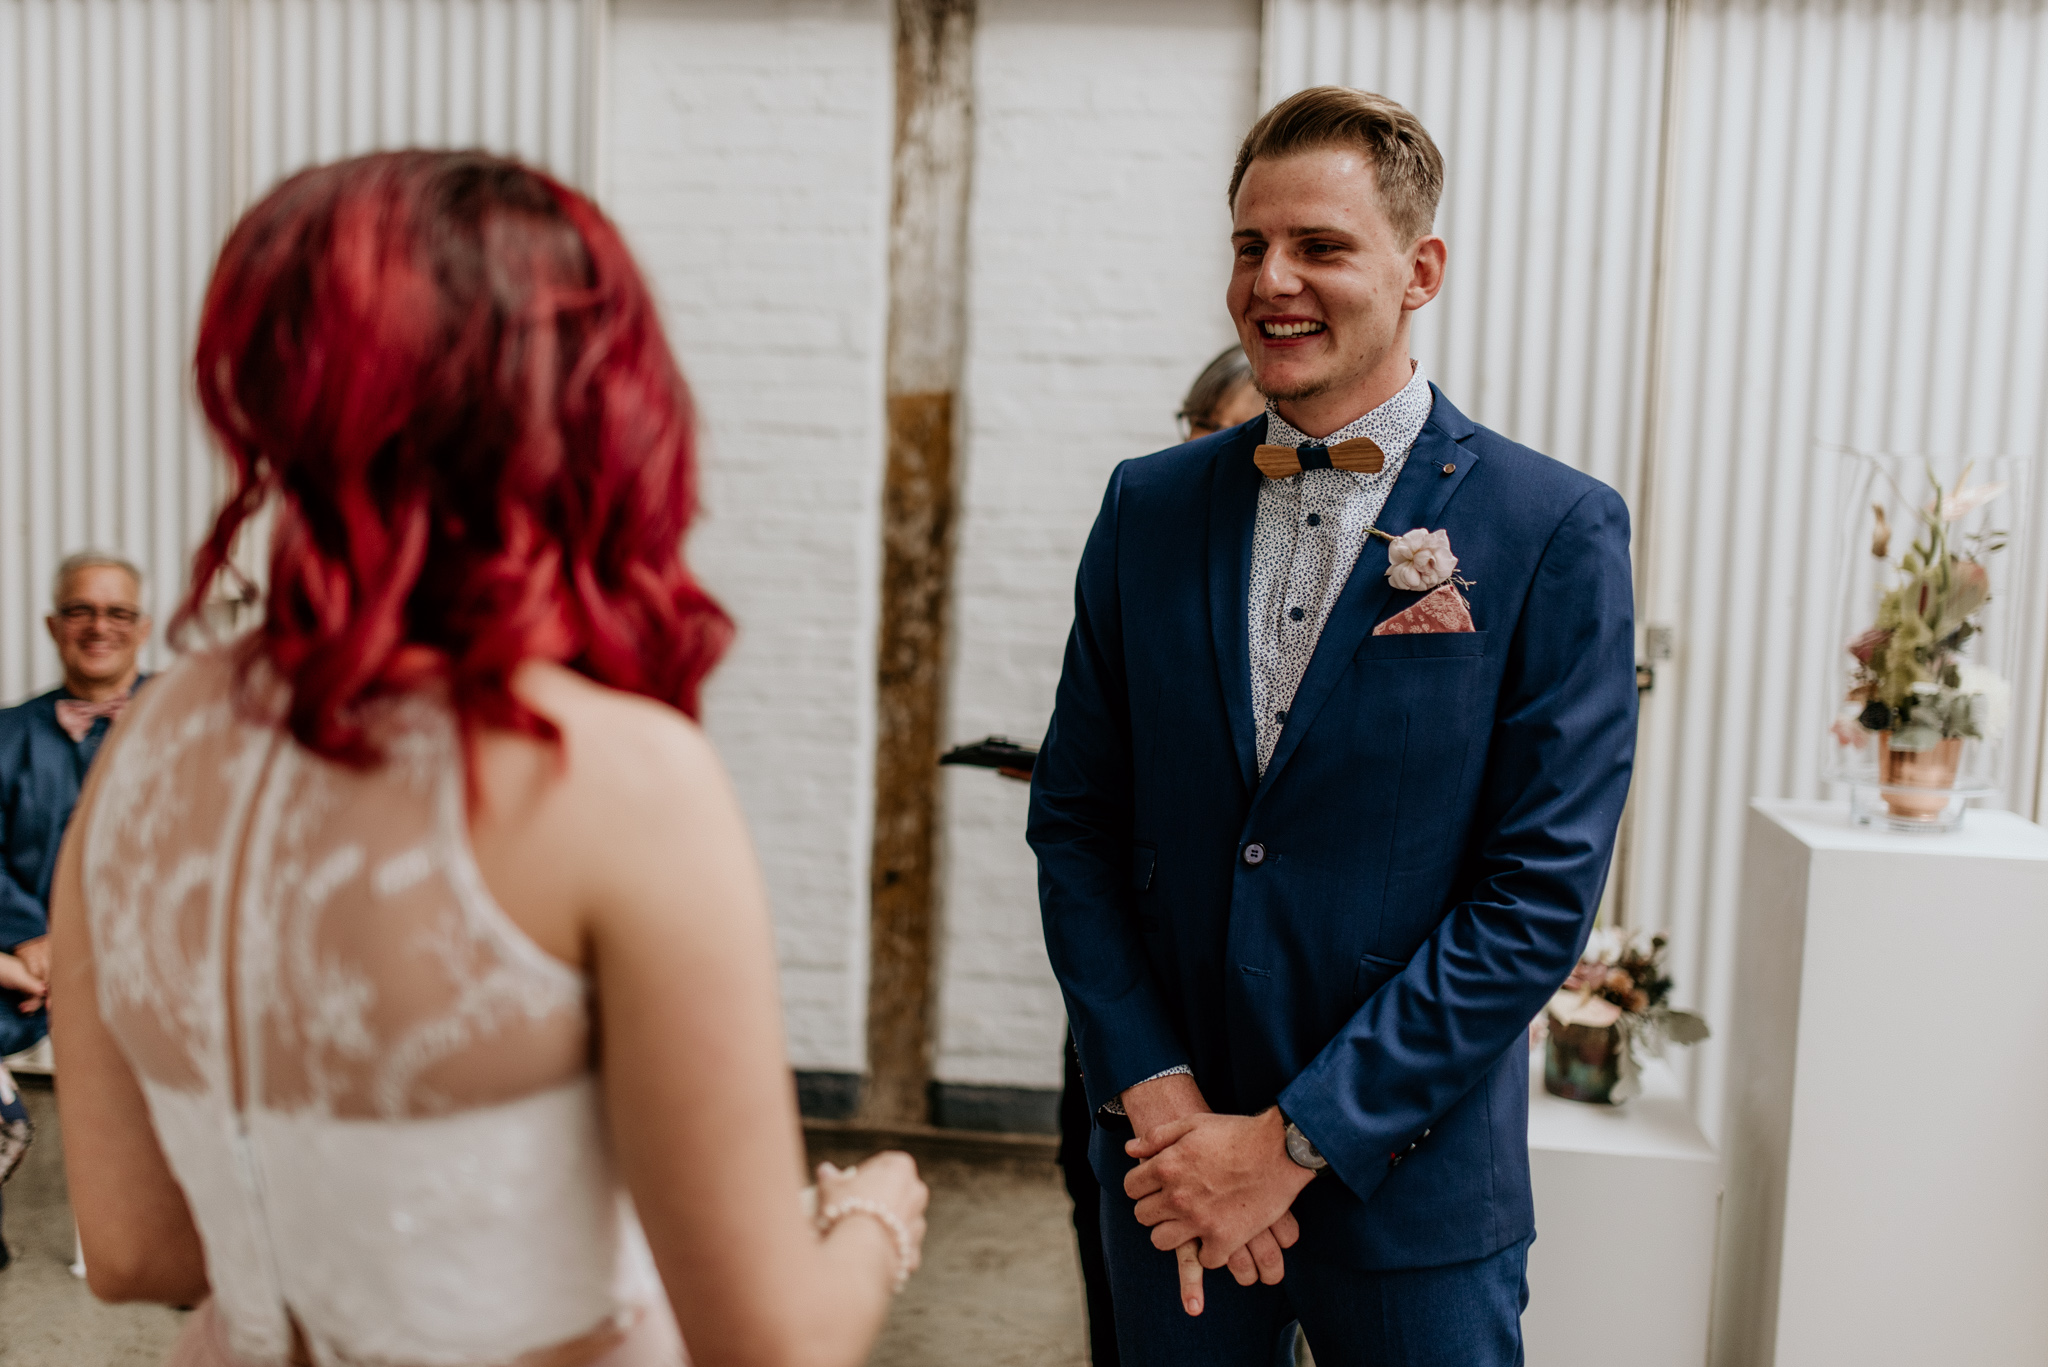 Groom in a blue suit shows big smile as bride reads vows at their maboneng wedding